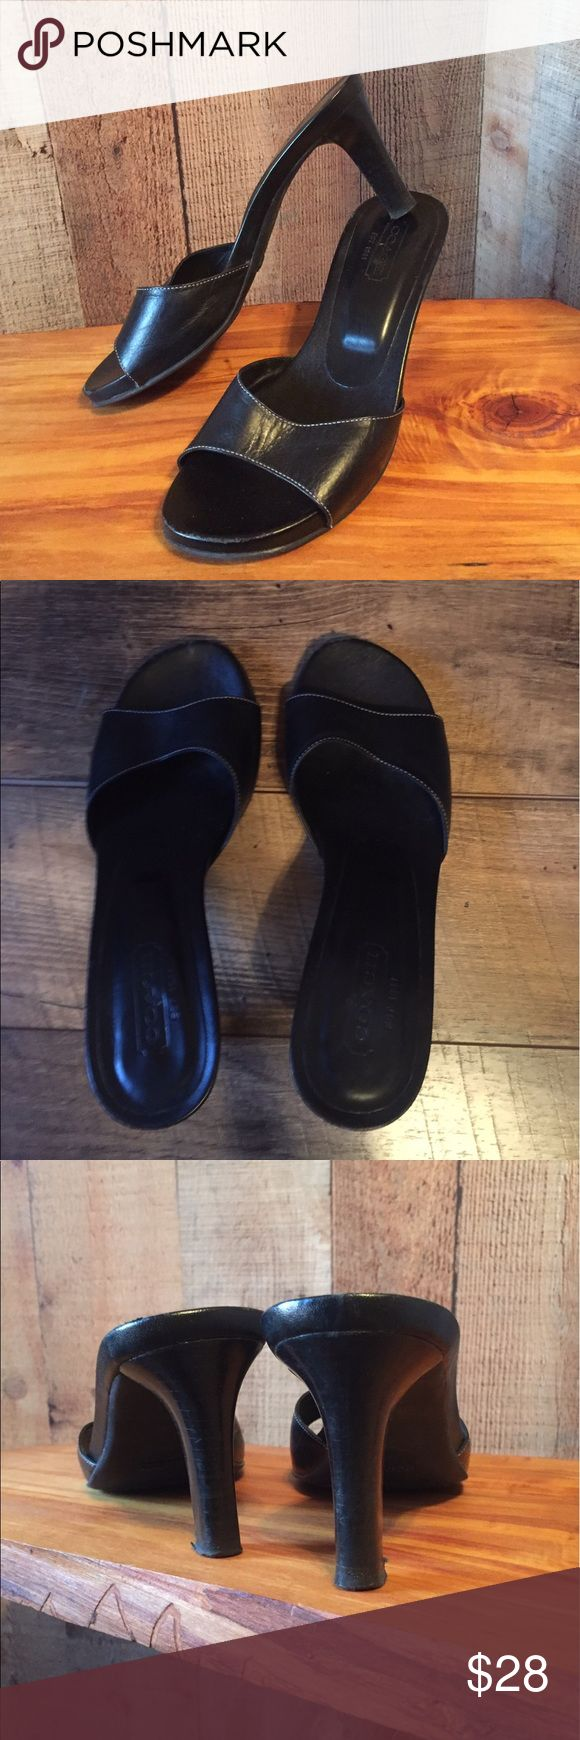 """COACH Slides sz 7.5 Black leather upper with contrast stitching.  COACH logo on the heel bed.  Comfortable 3.5"""" heel.  The worst wear is displayed on the front of the toes in a picture.  Size 7.5.  Unfortunately no box. Coach Shoes Sandals"""